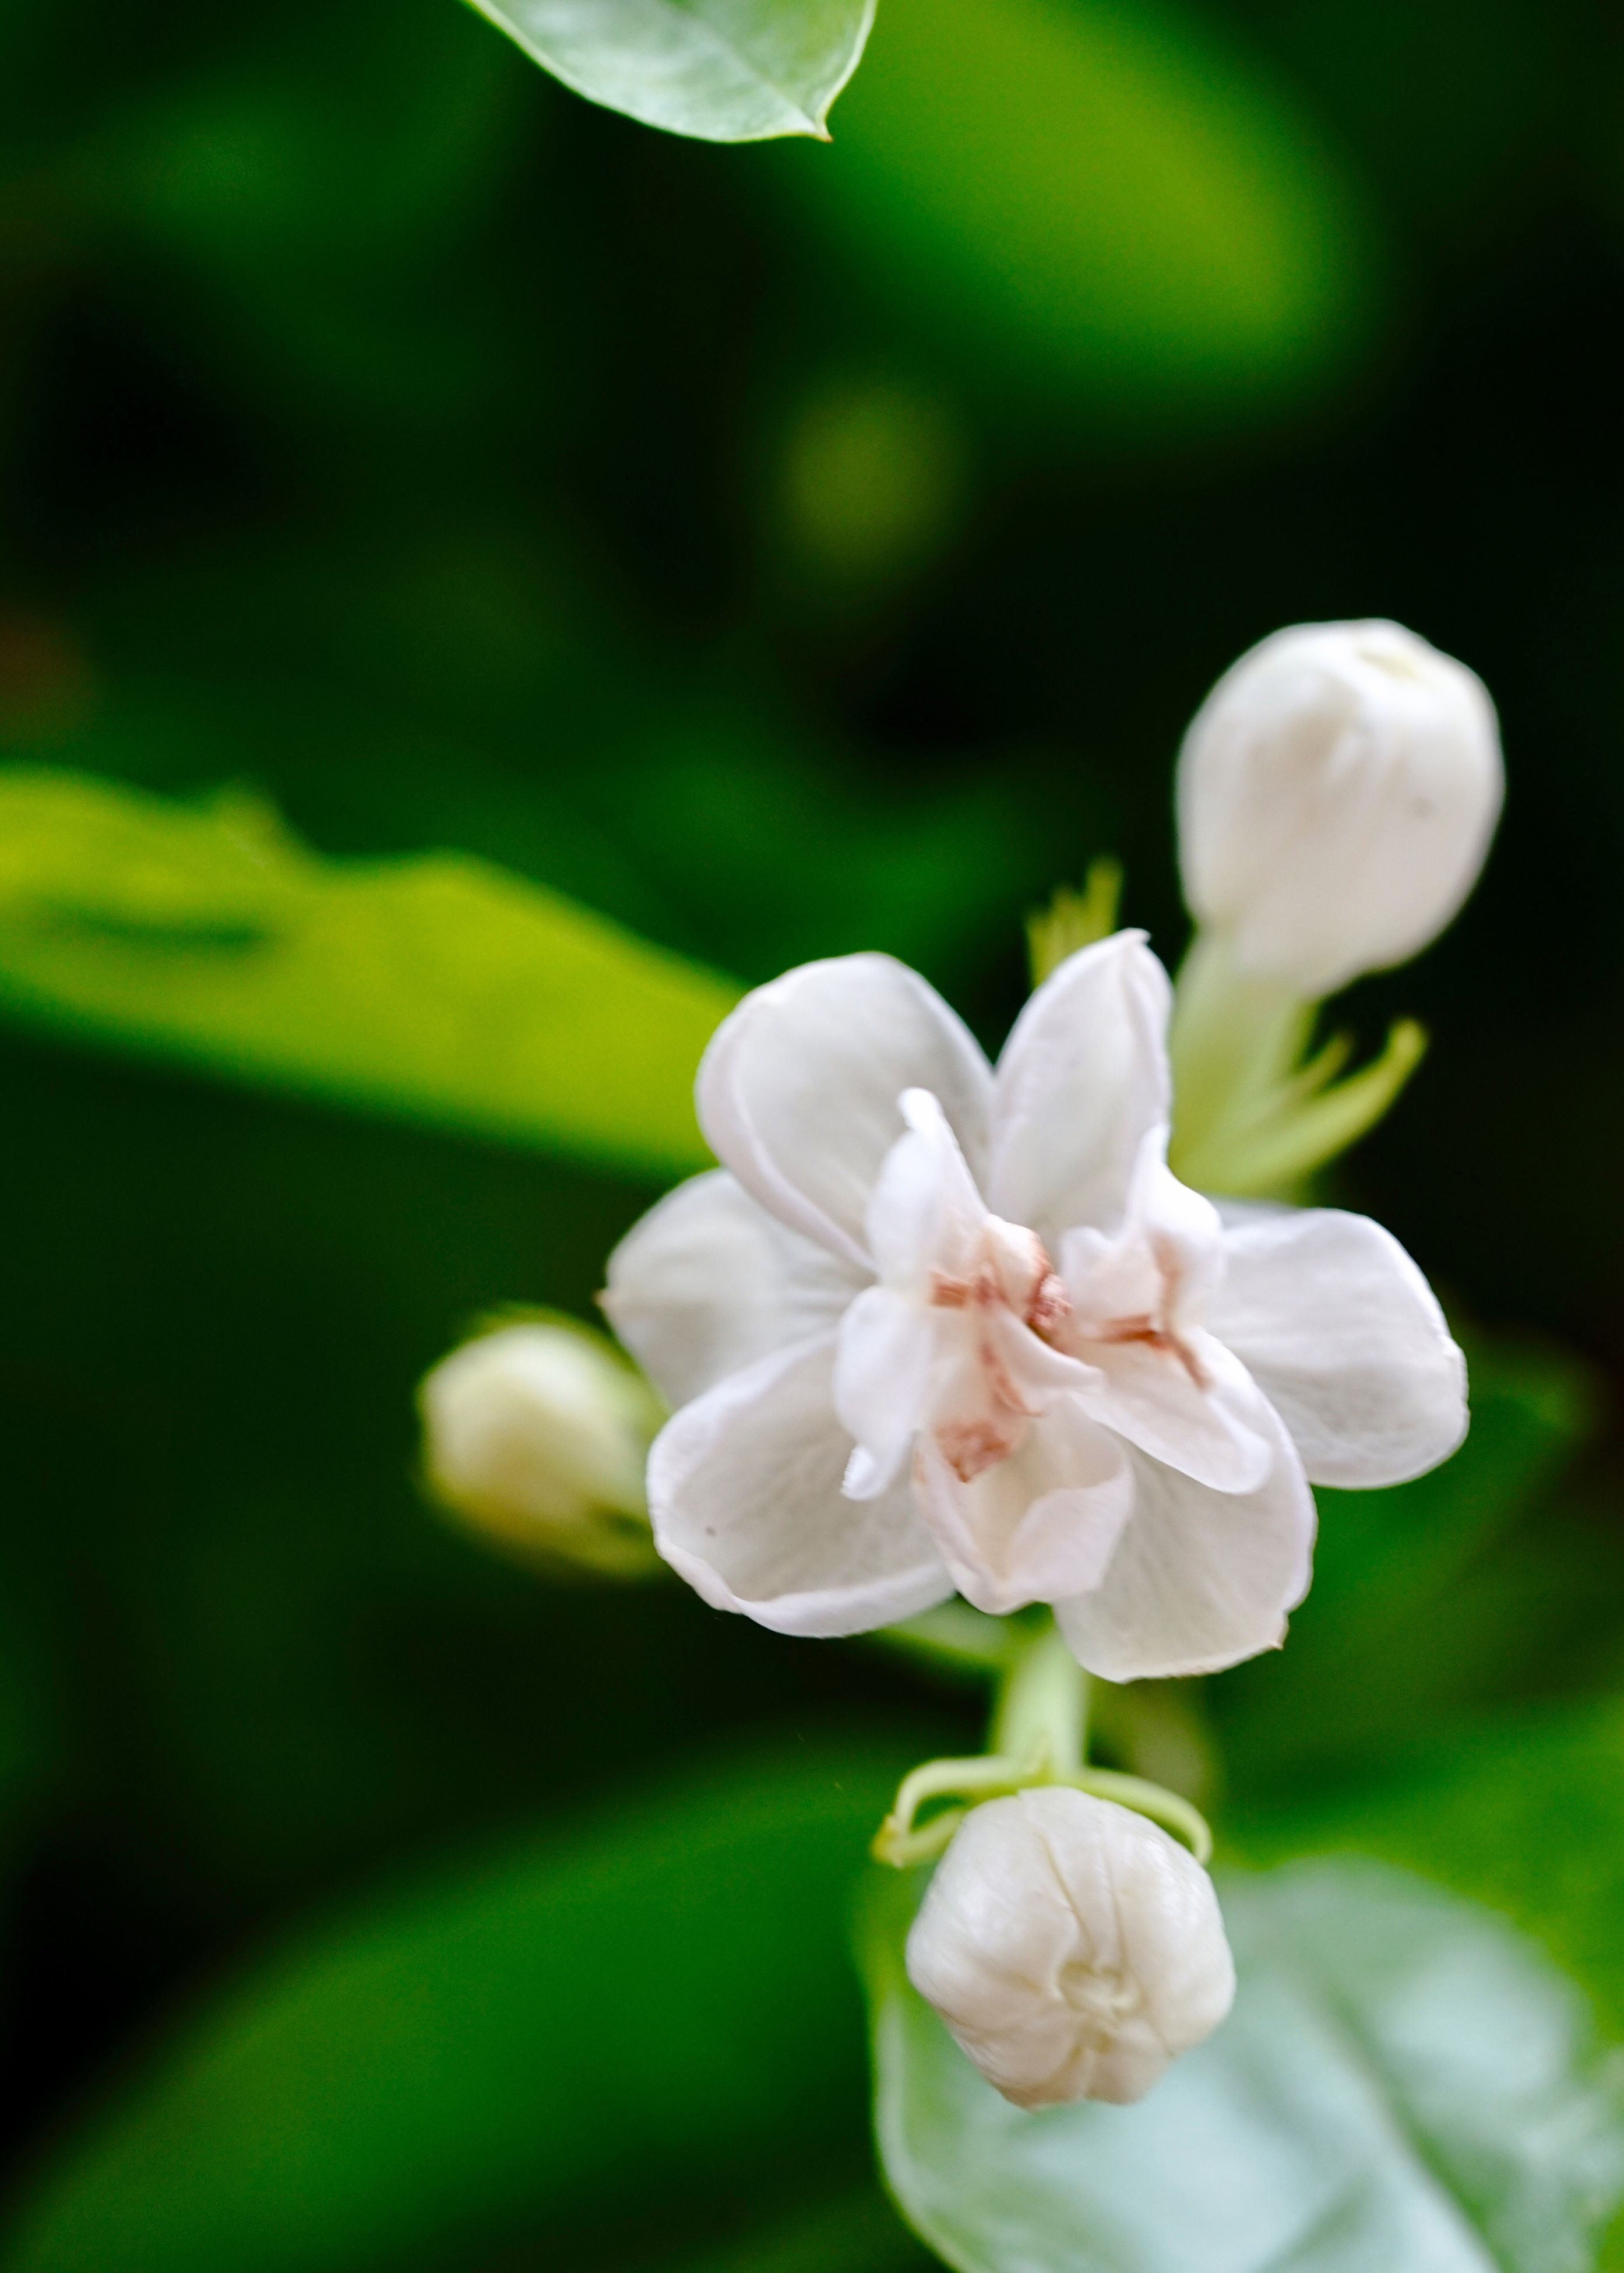 flower, white color, petal, nature, beauty in nature, fragility, growth, plant, flower head, freshness, no people, close-up, blooming, day, outdoors